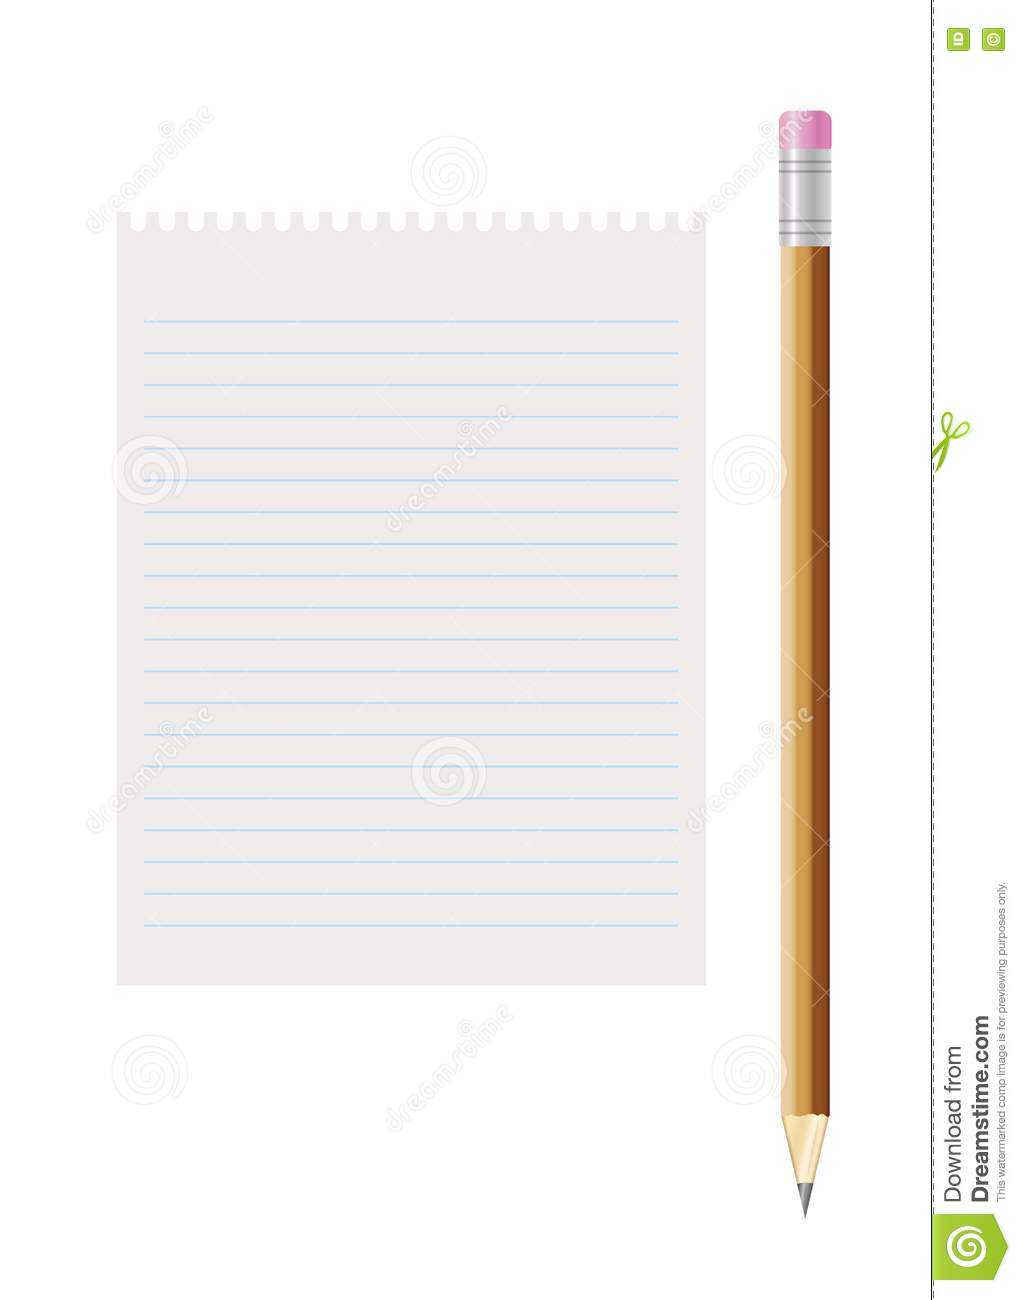 Blank Lined Paper And Pencil With Eraser Illustration – Print College Ruled Paper